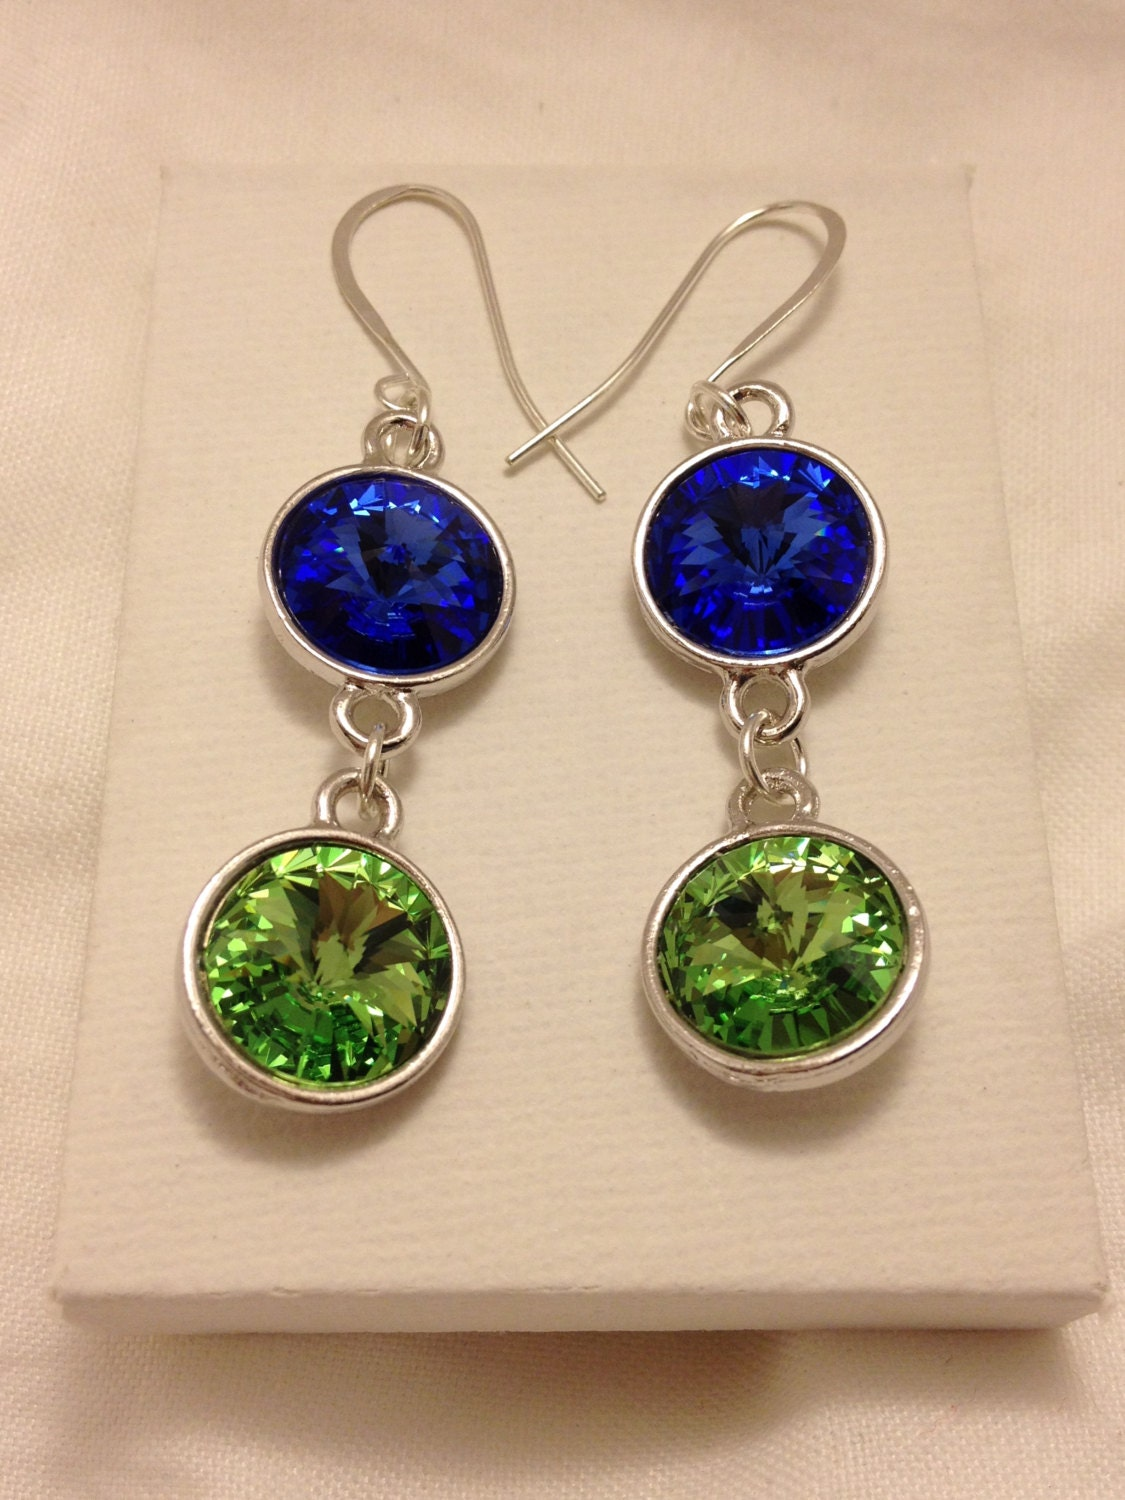 seahawks jewelry seattle seahawks swarovski earrings by annabelsatticshop 2590